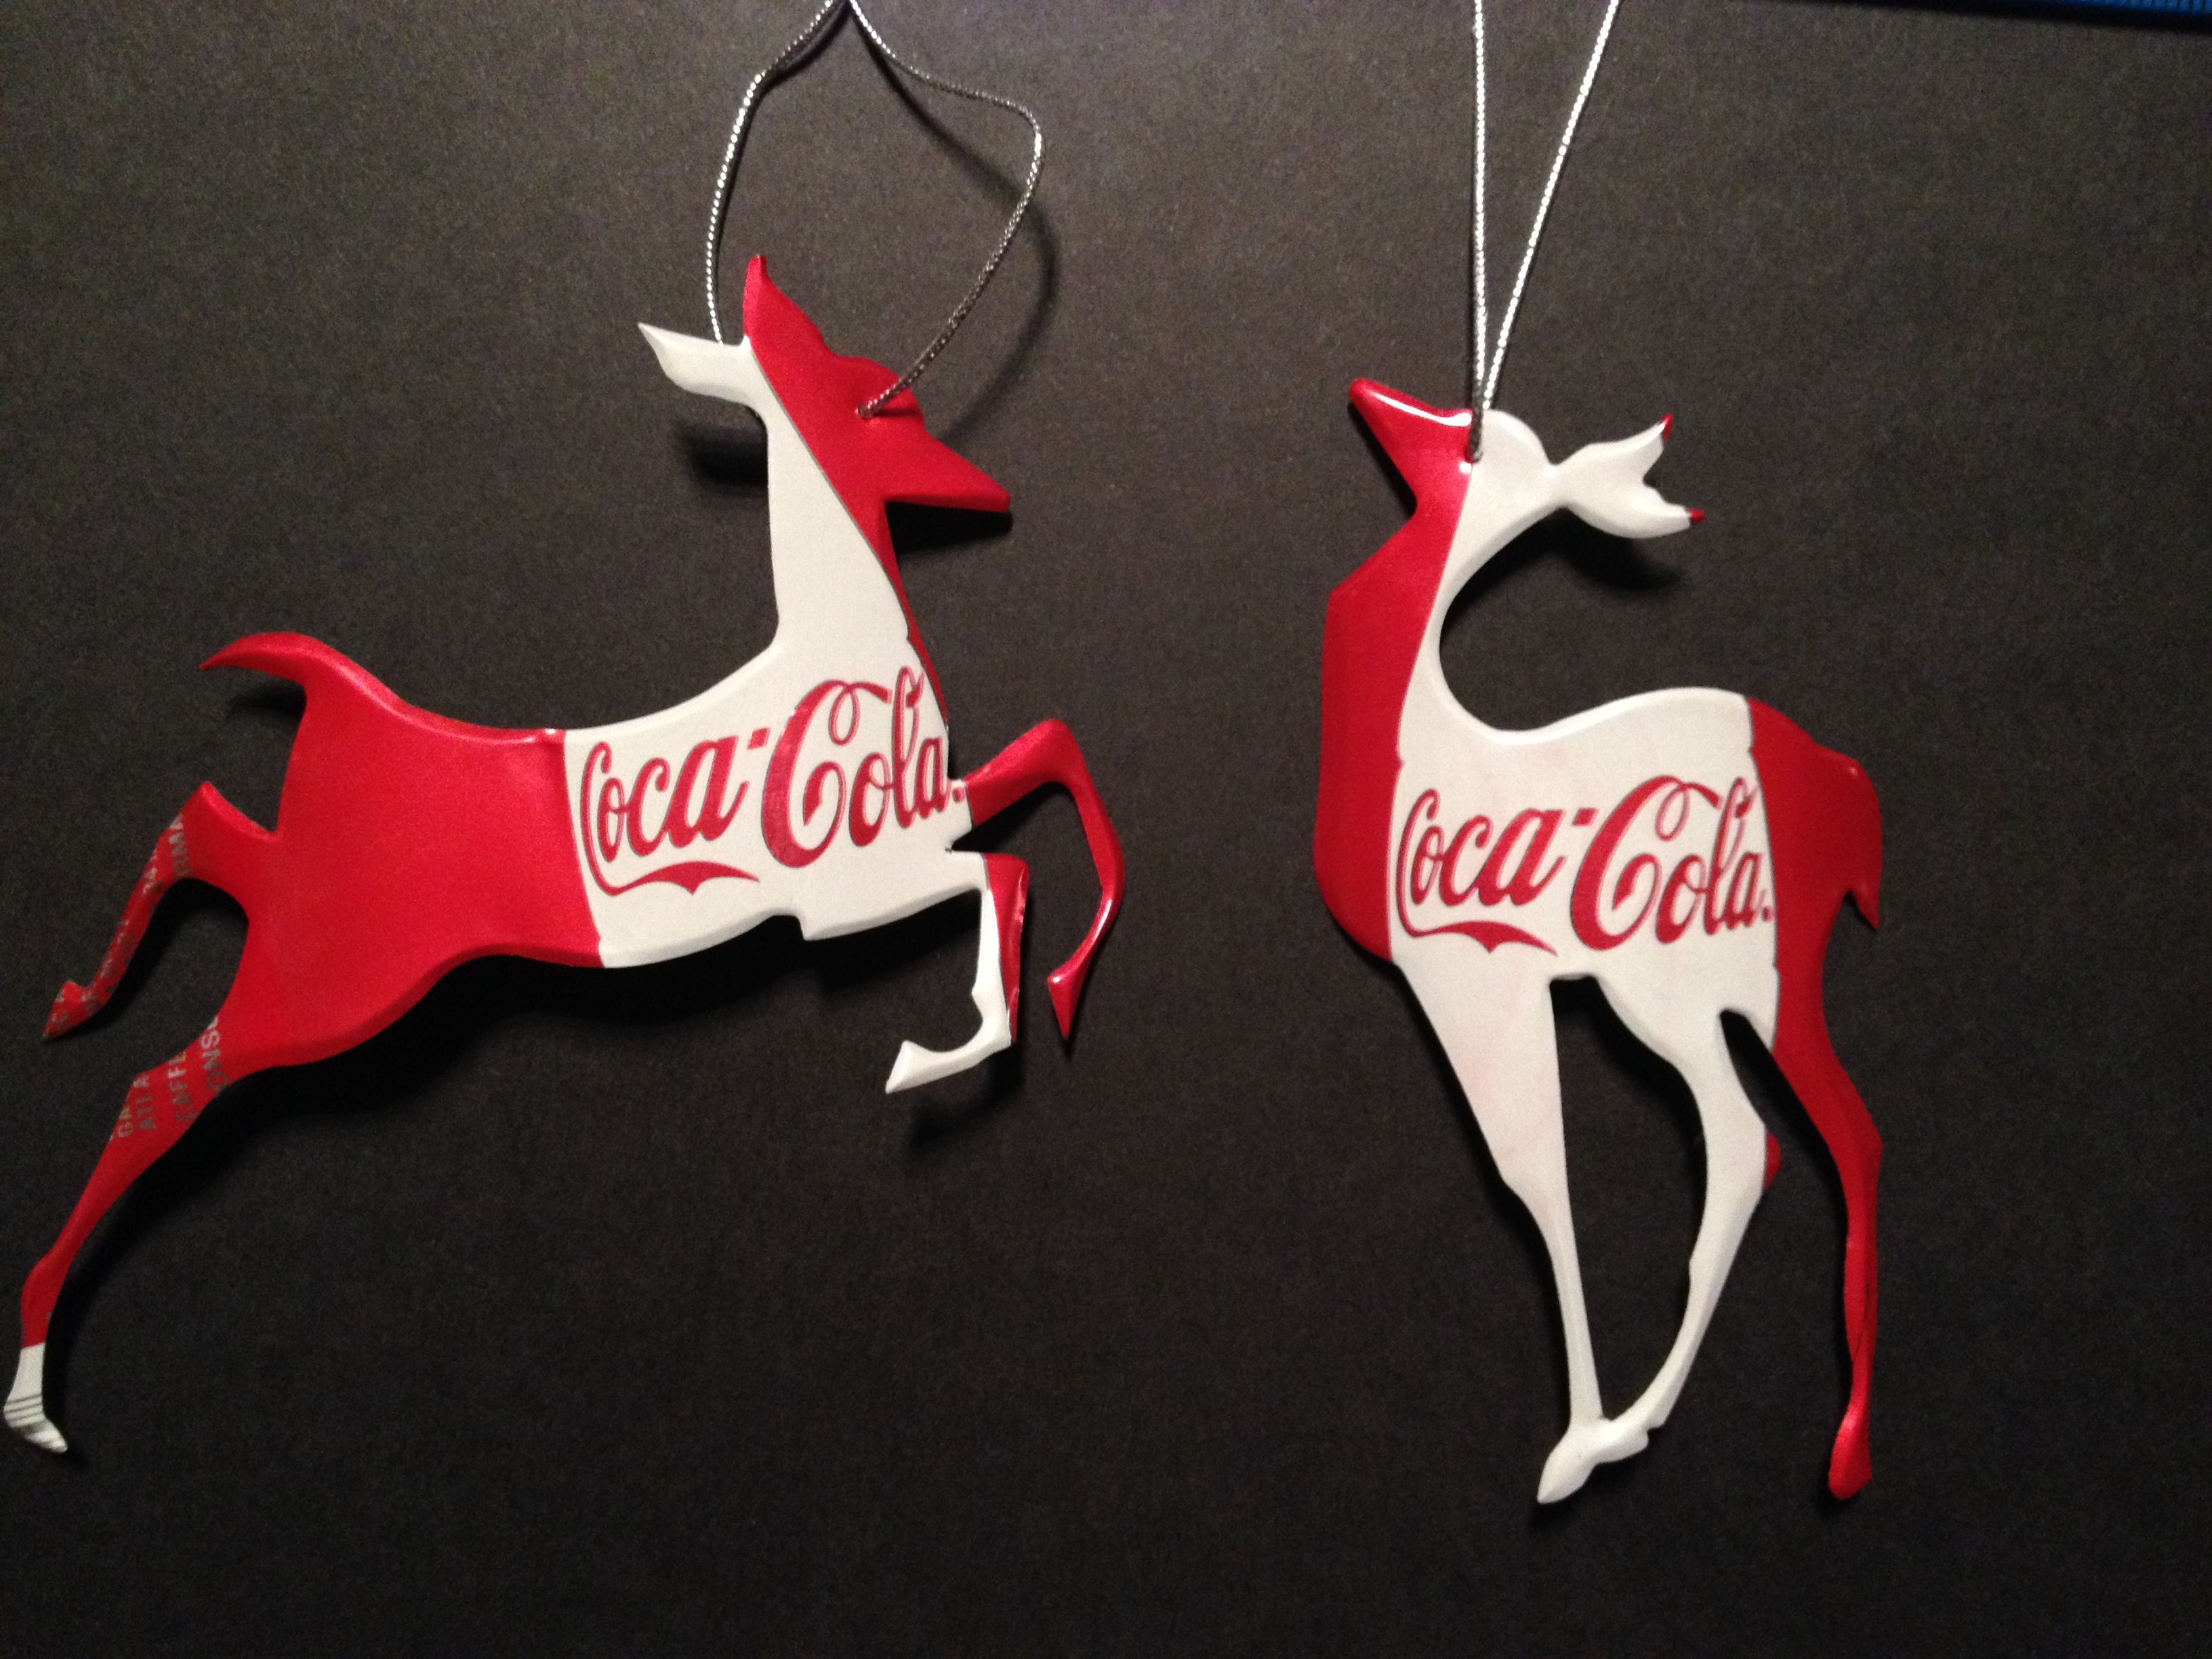 Recycled Christmas Ornaments made from Aluminum cans Coca Cola